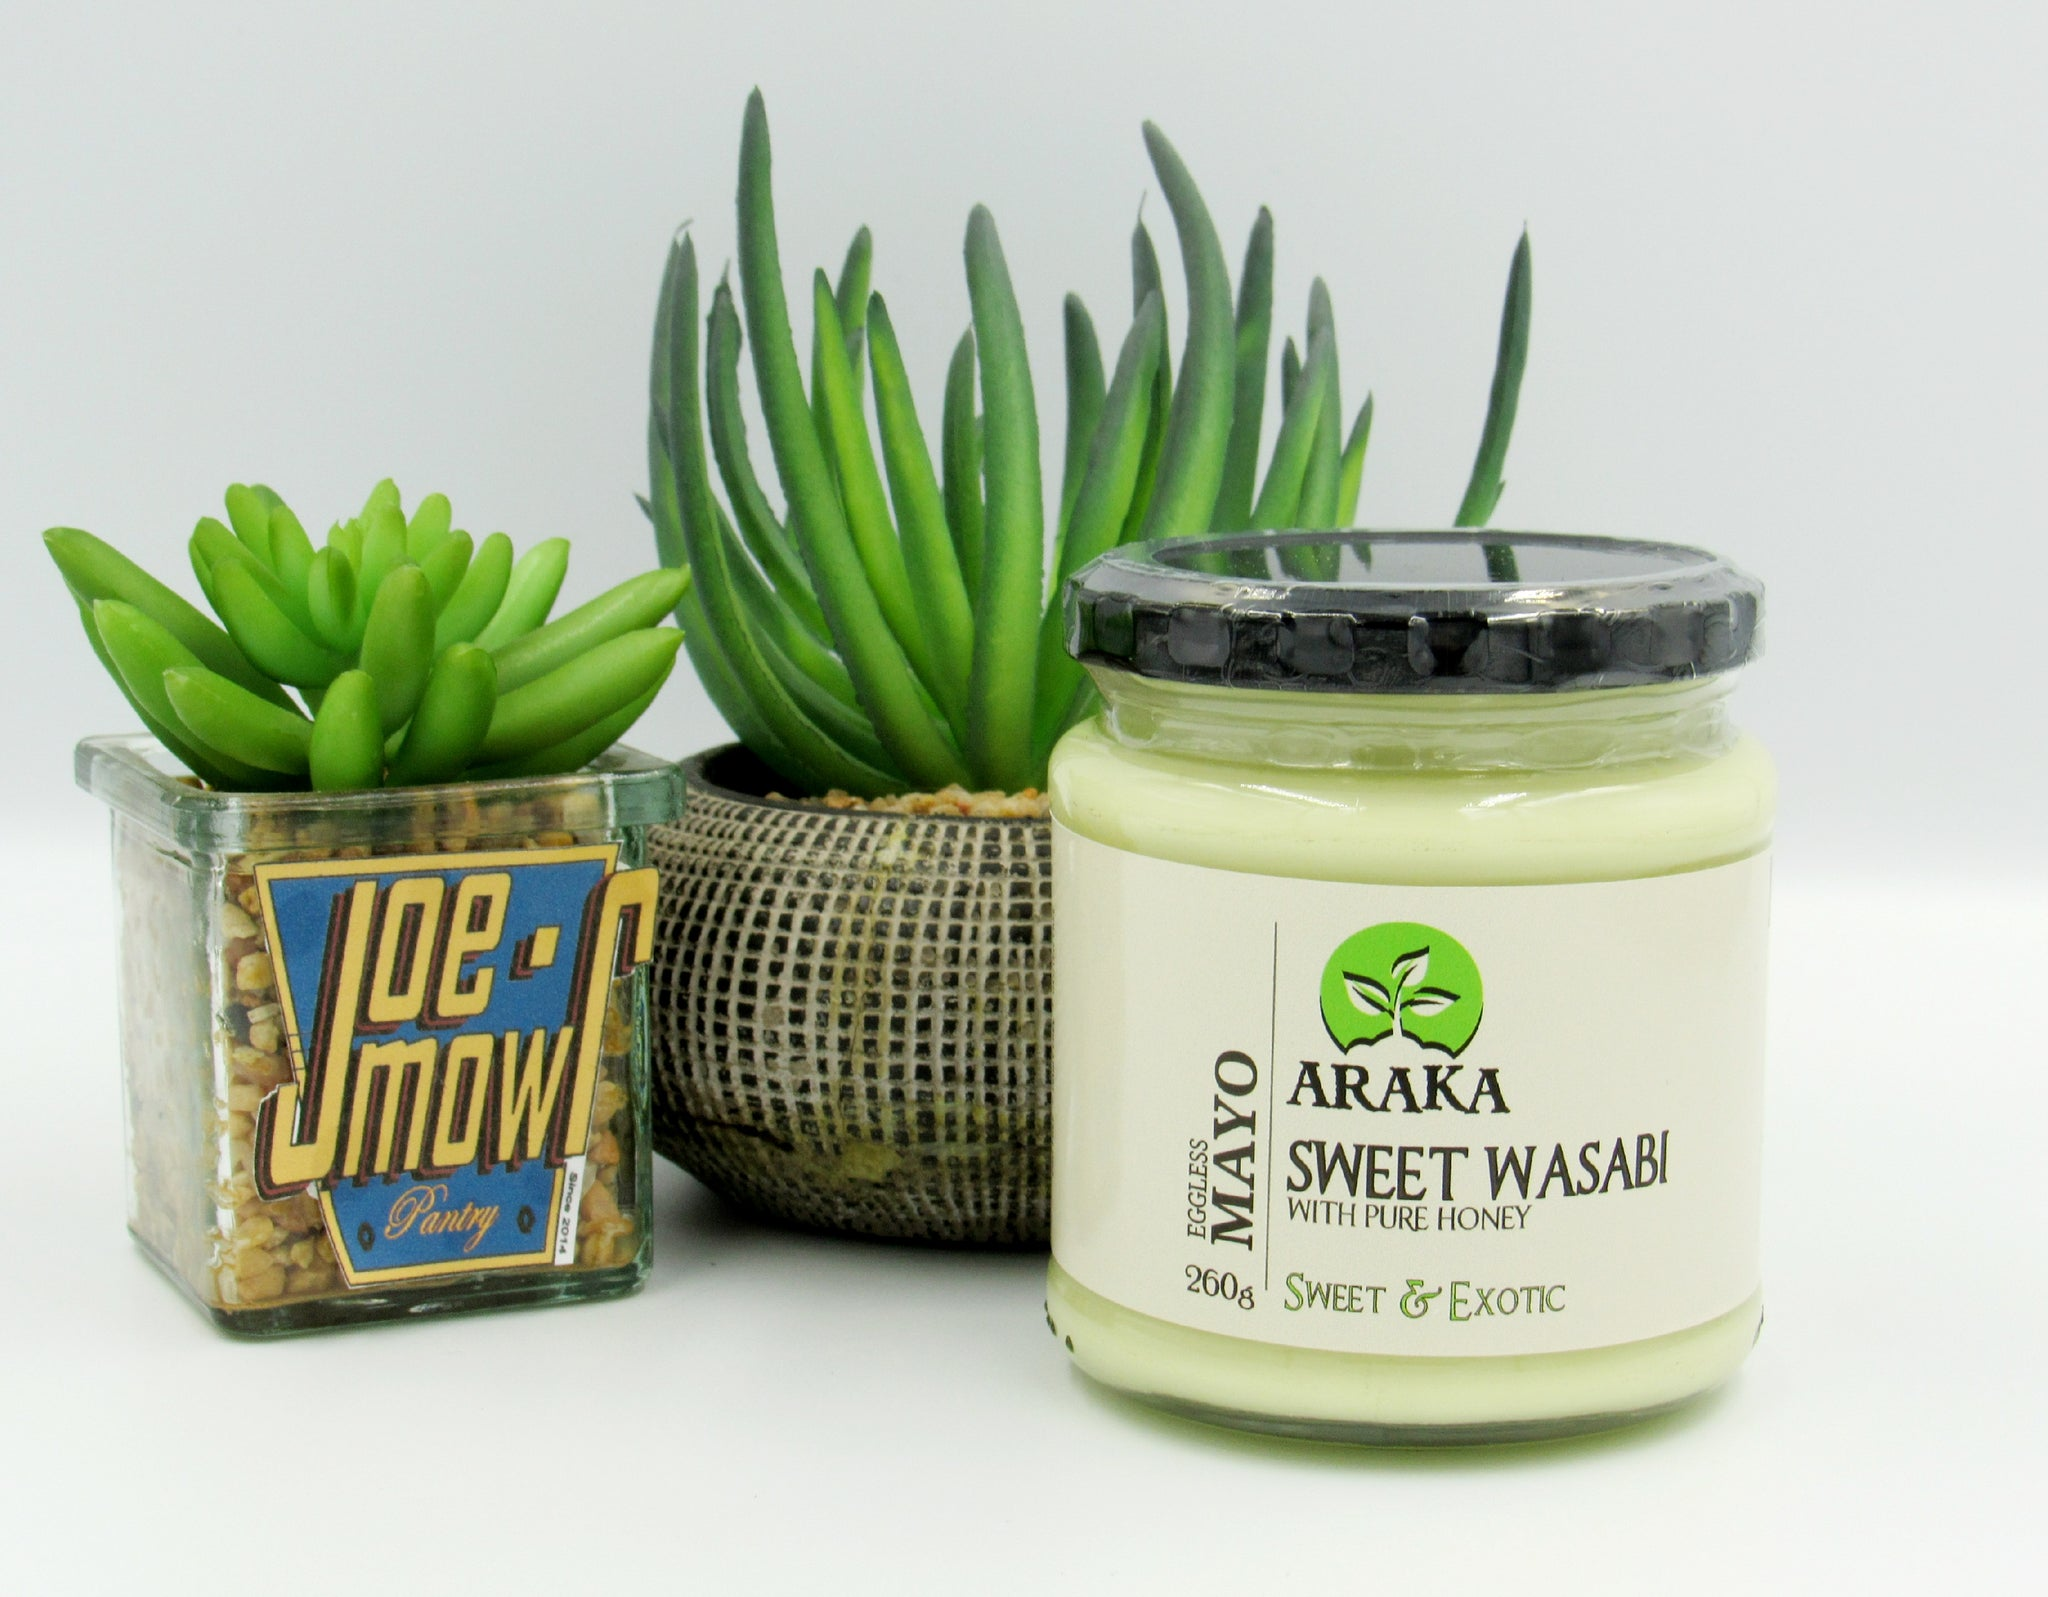 Araka Sweet Wasabi With Pure Honey Eggless Mayo 260g (sweet  & exotic)